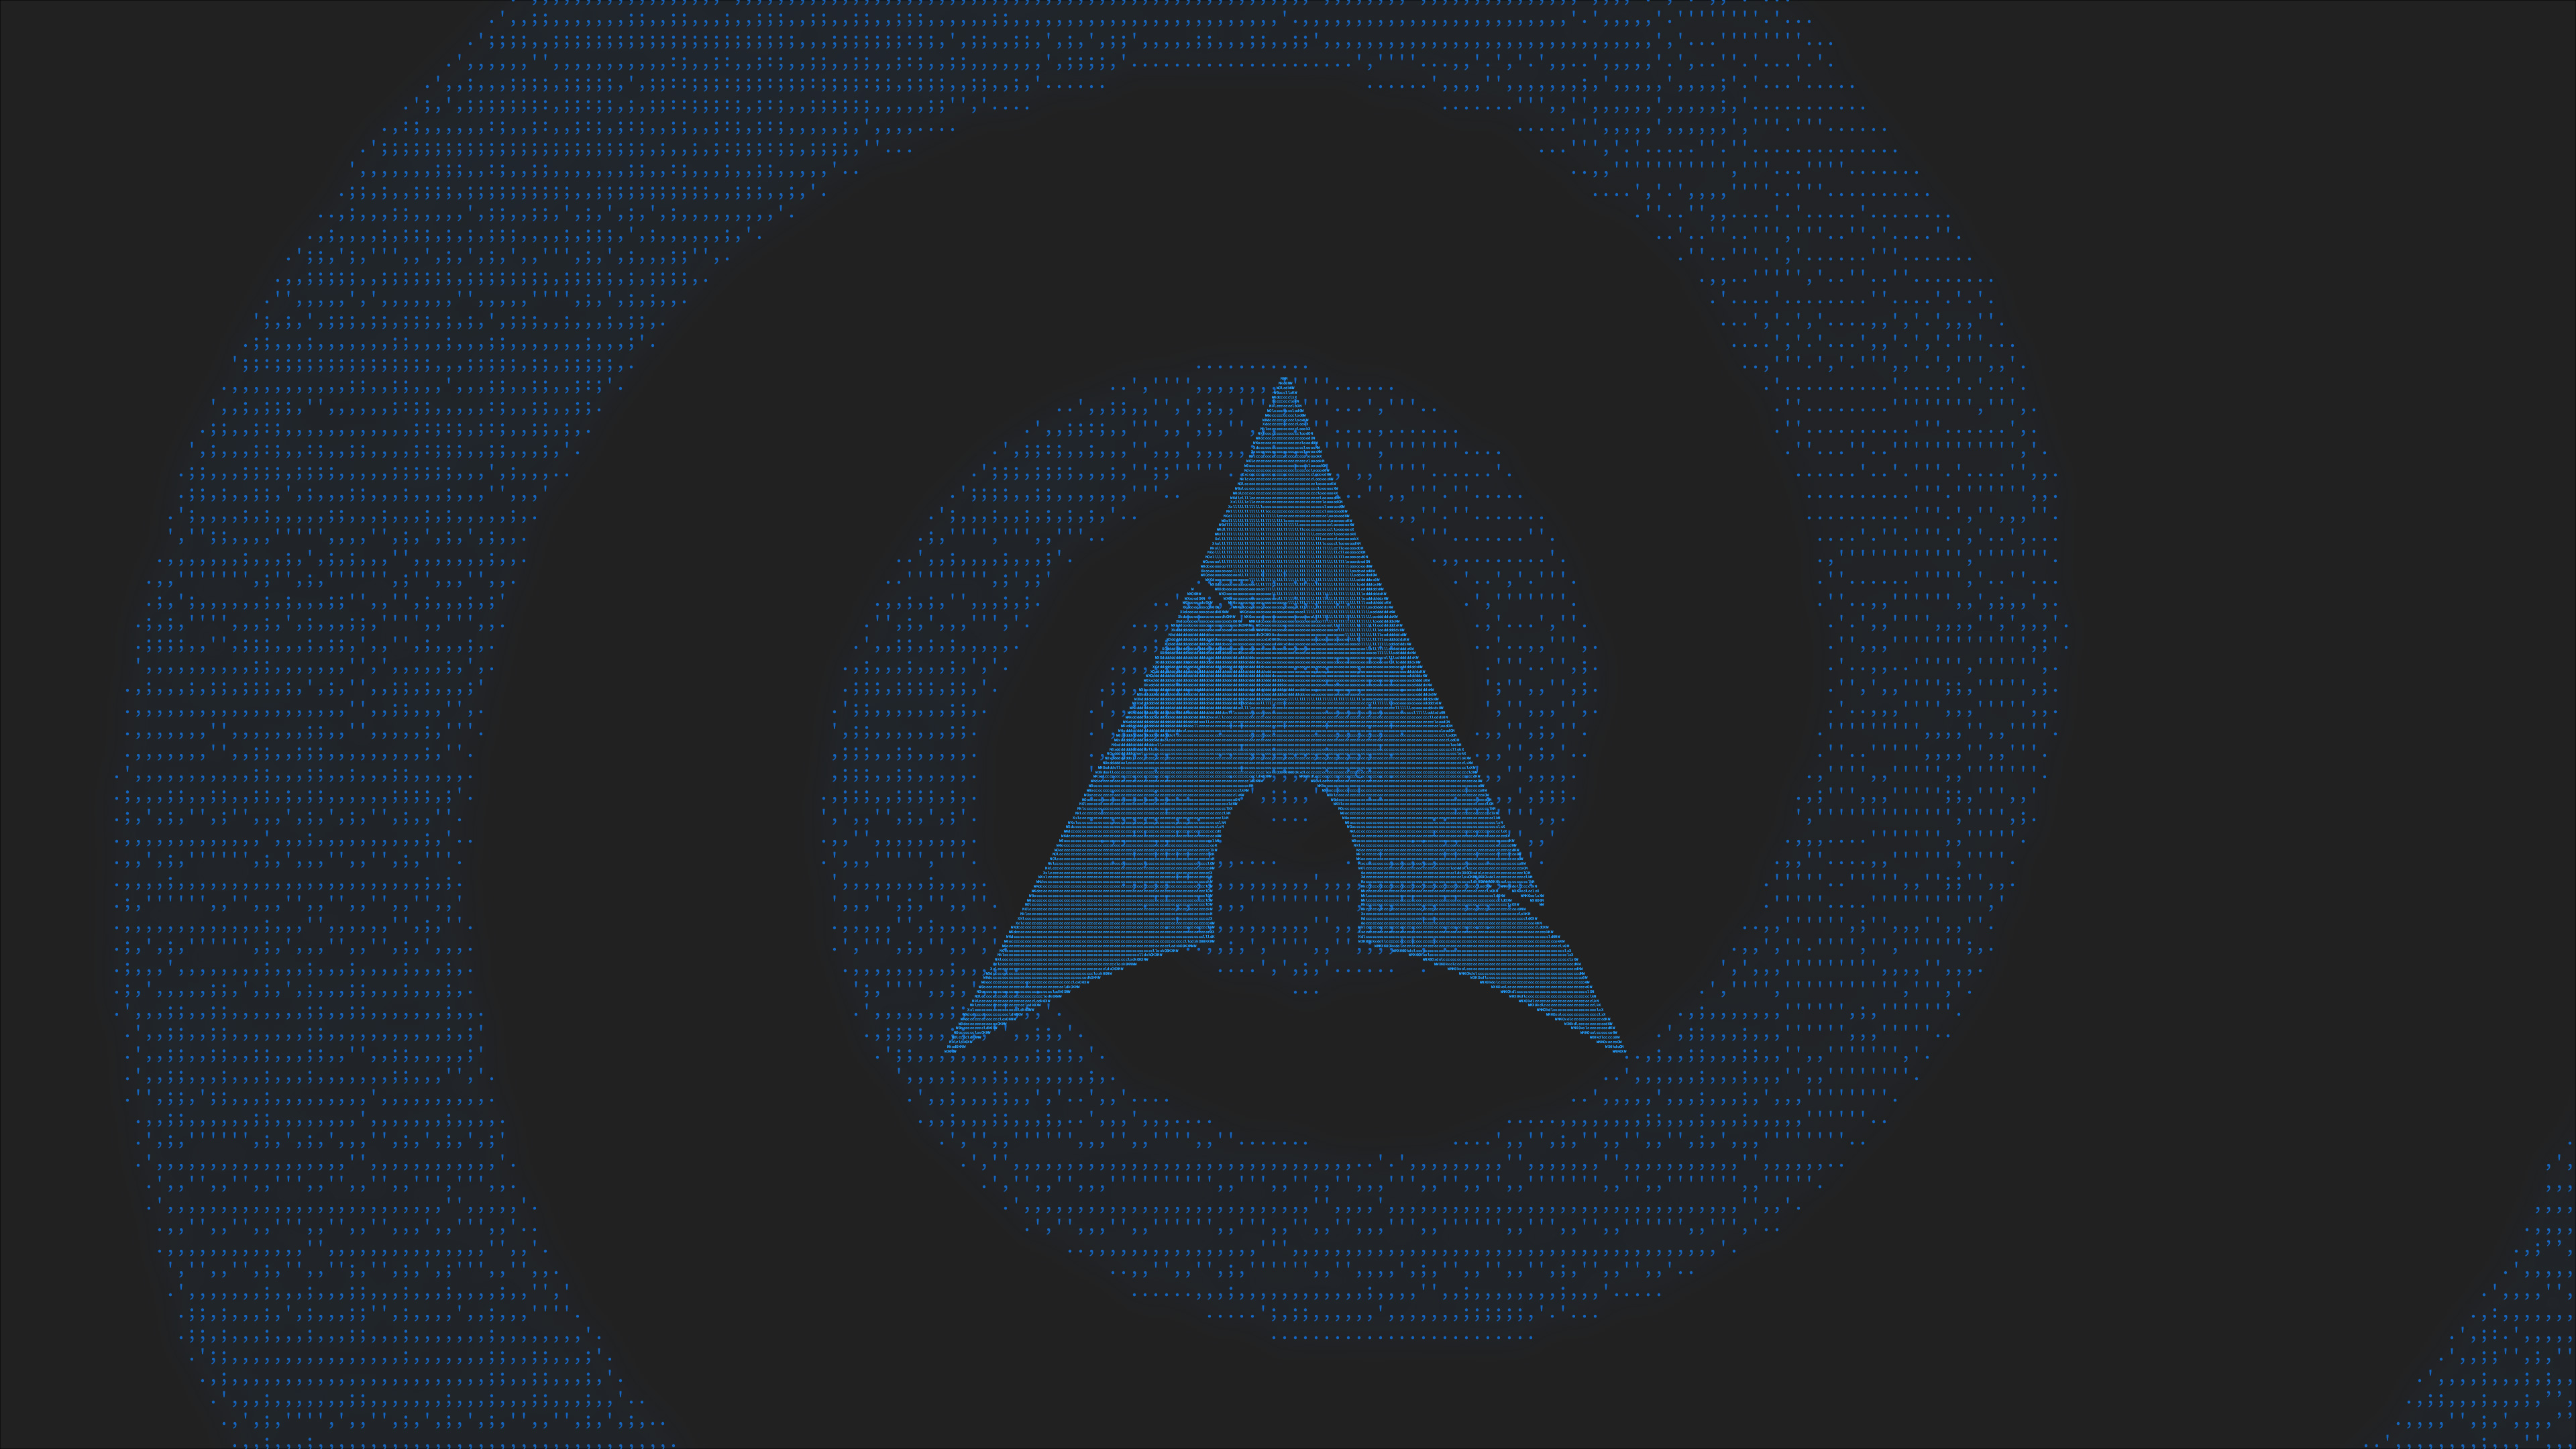 Arch Linux Minimalism 4k Hd Computer 4k Wallpapers Images